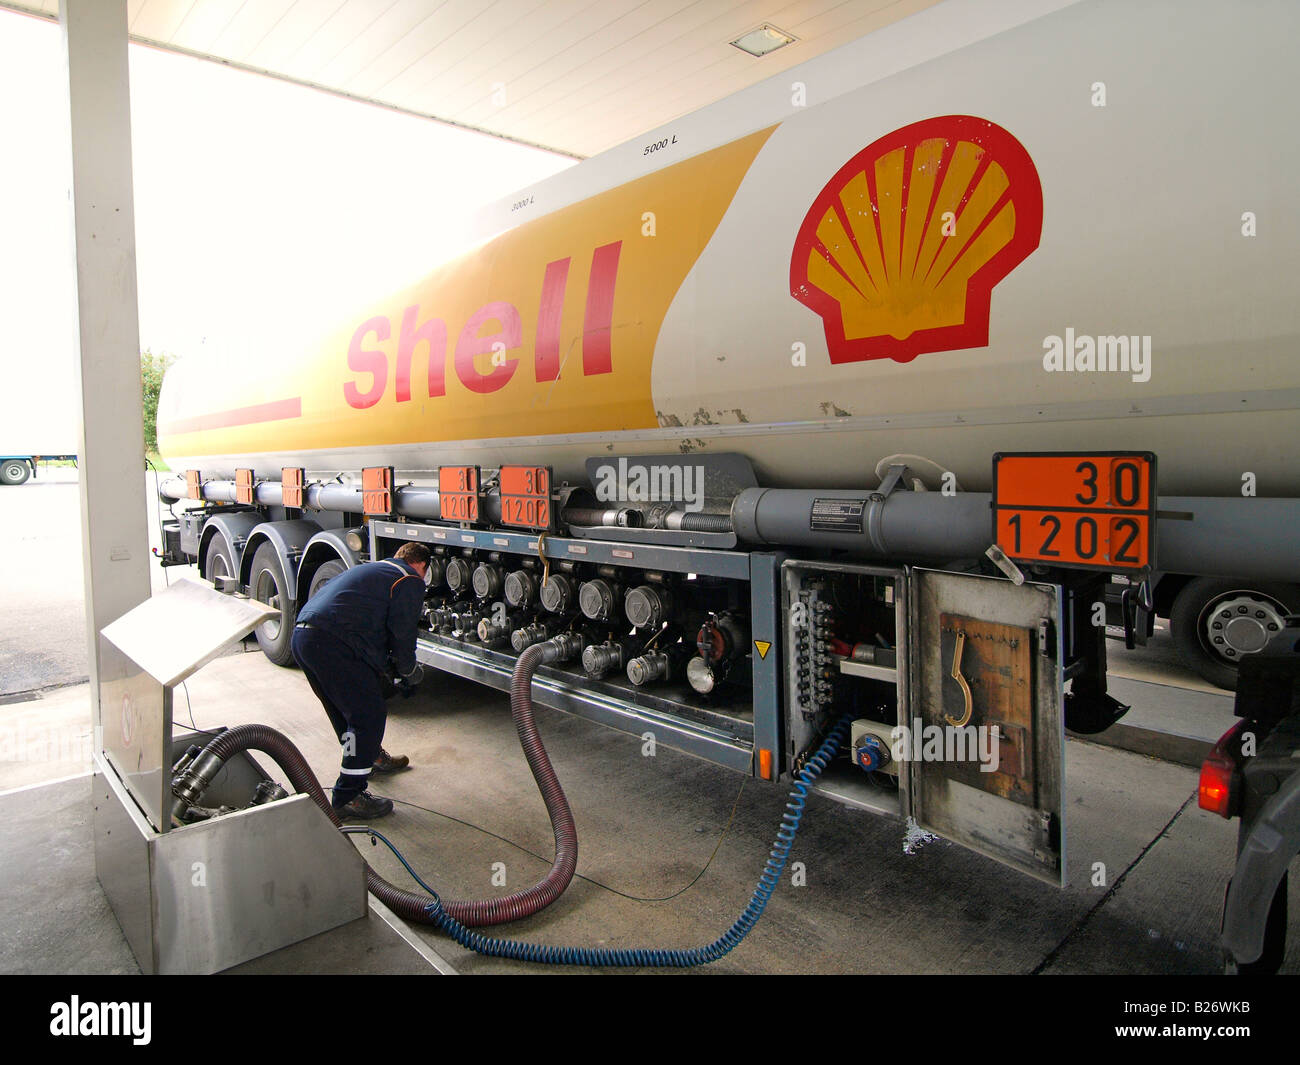 shell truck delivering diesel fuel at a special gas station for stock photo 18591535 alamy. Black Bedroom Furniture Sets. Home Design Ideas